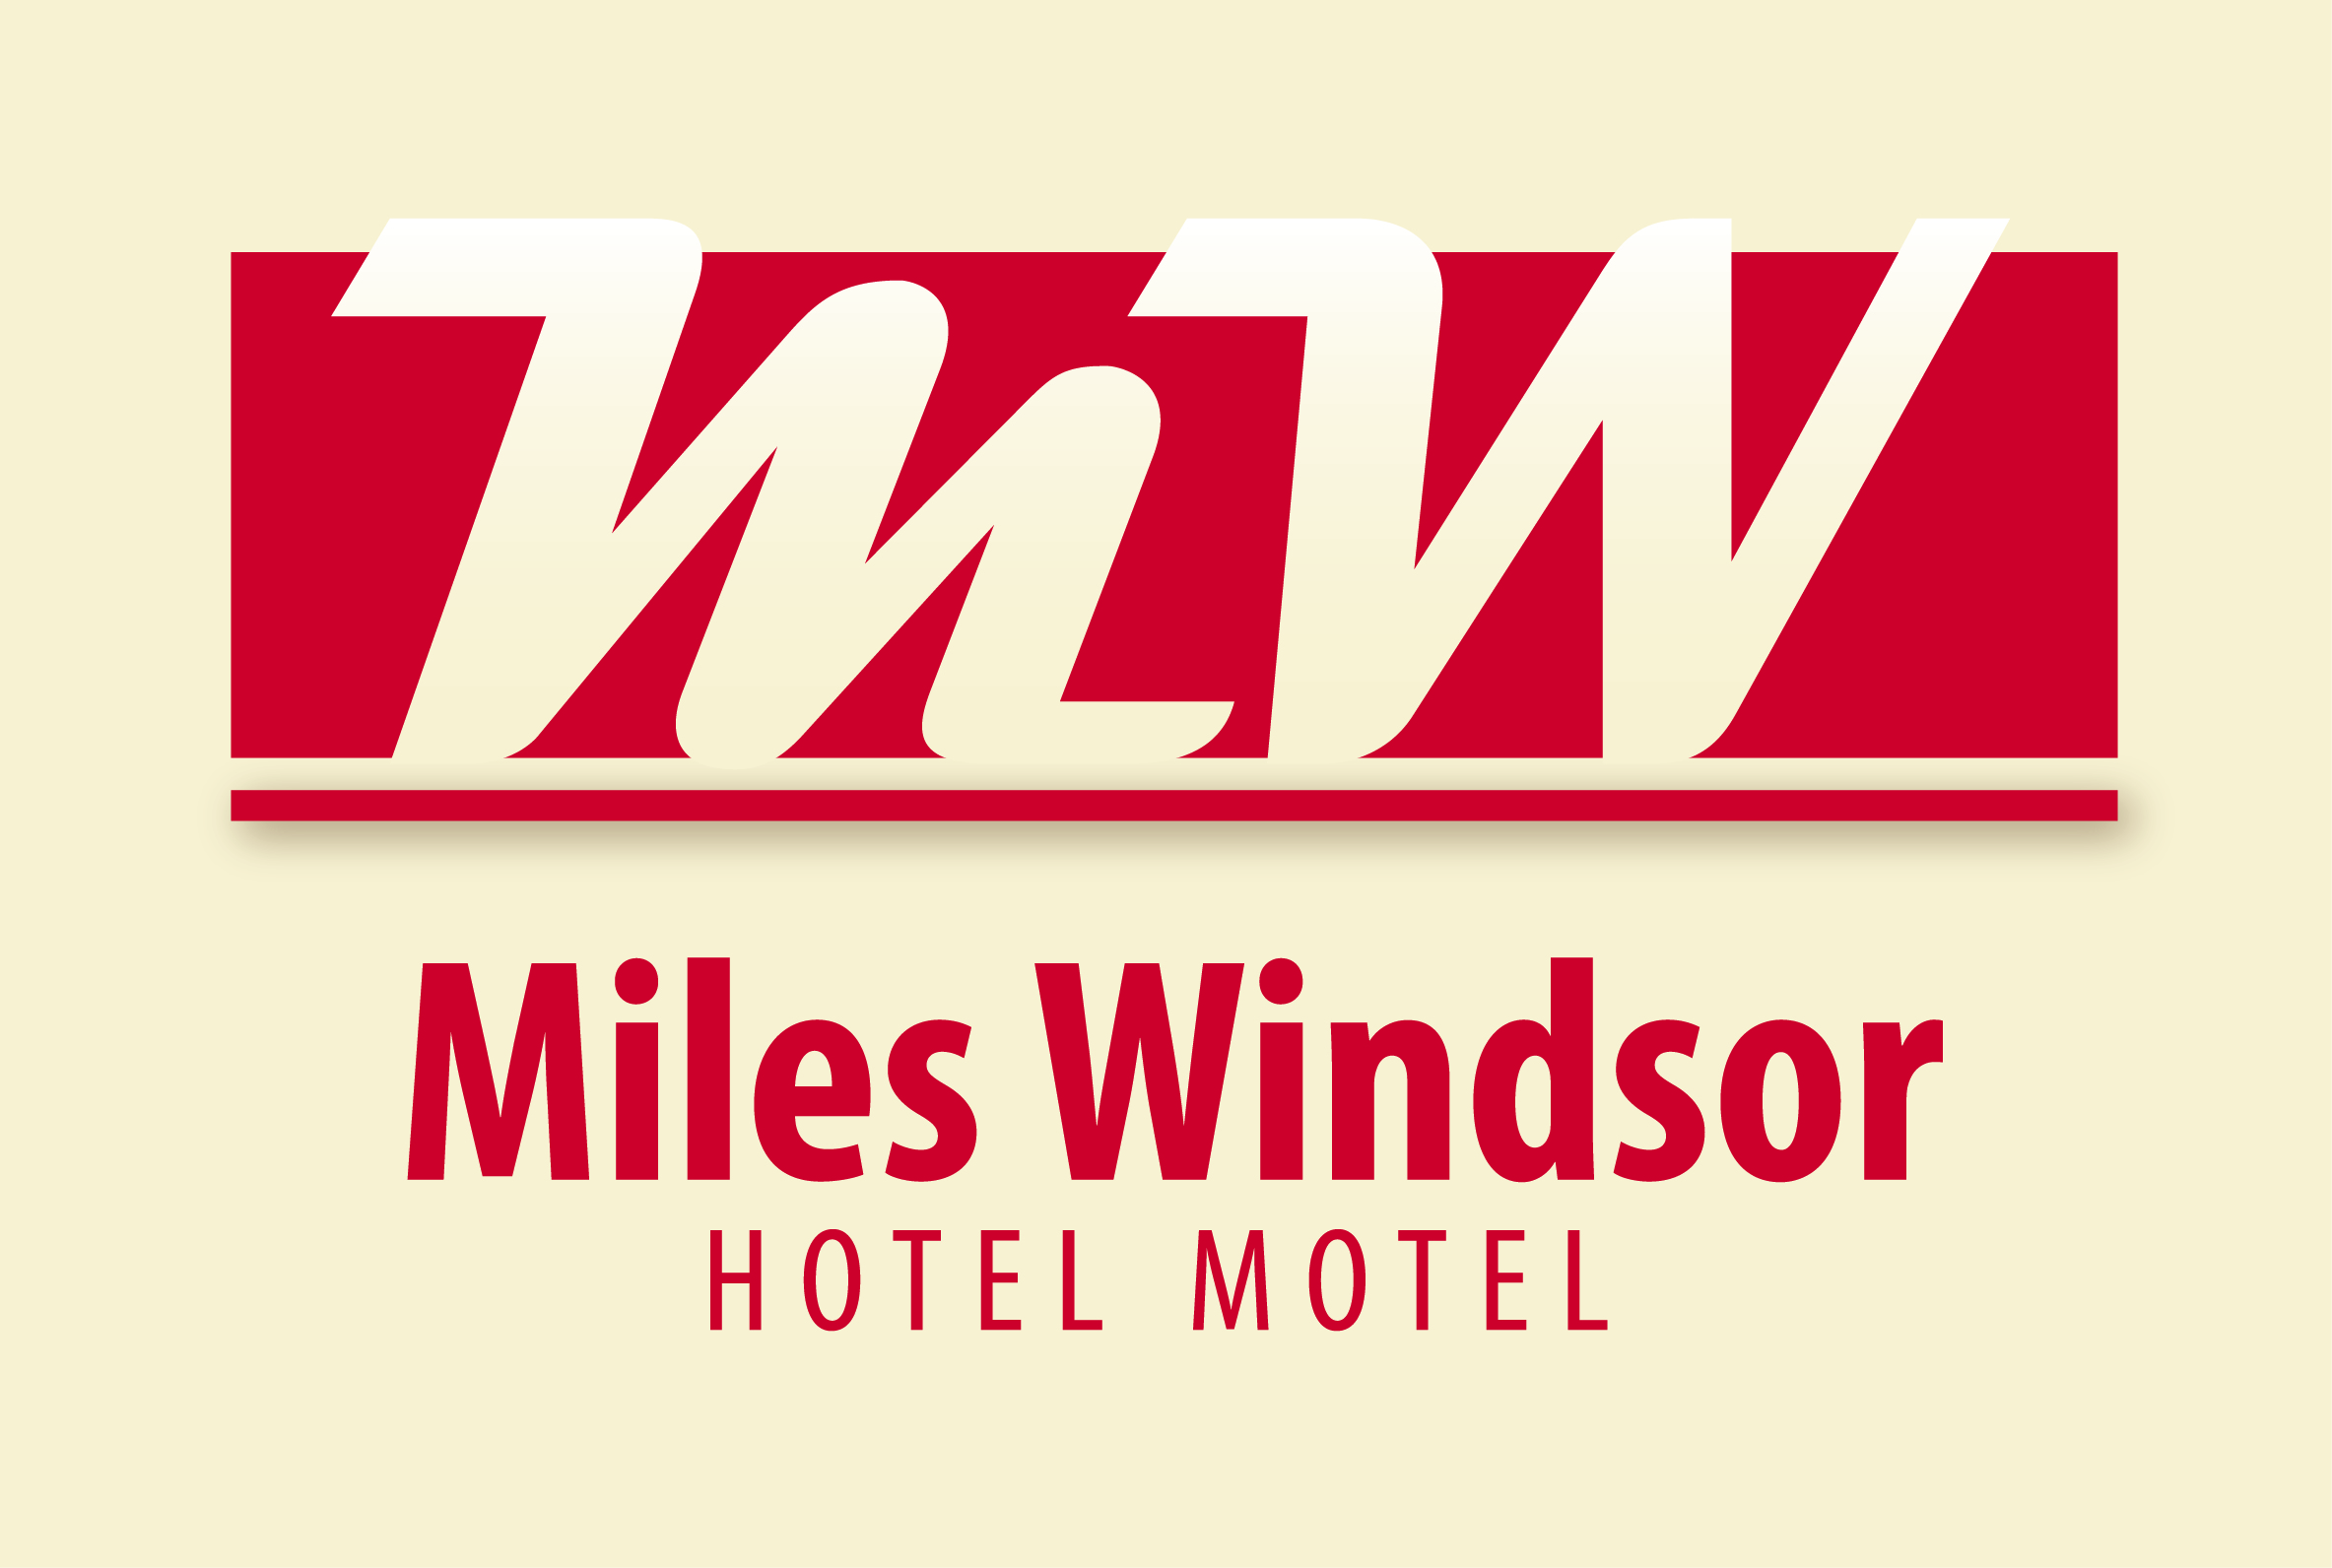 Miles Windsor Hotel Motel - Townsville Tourism